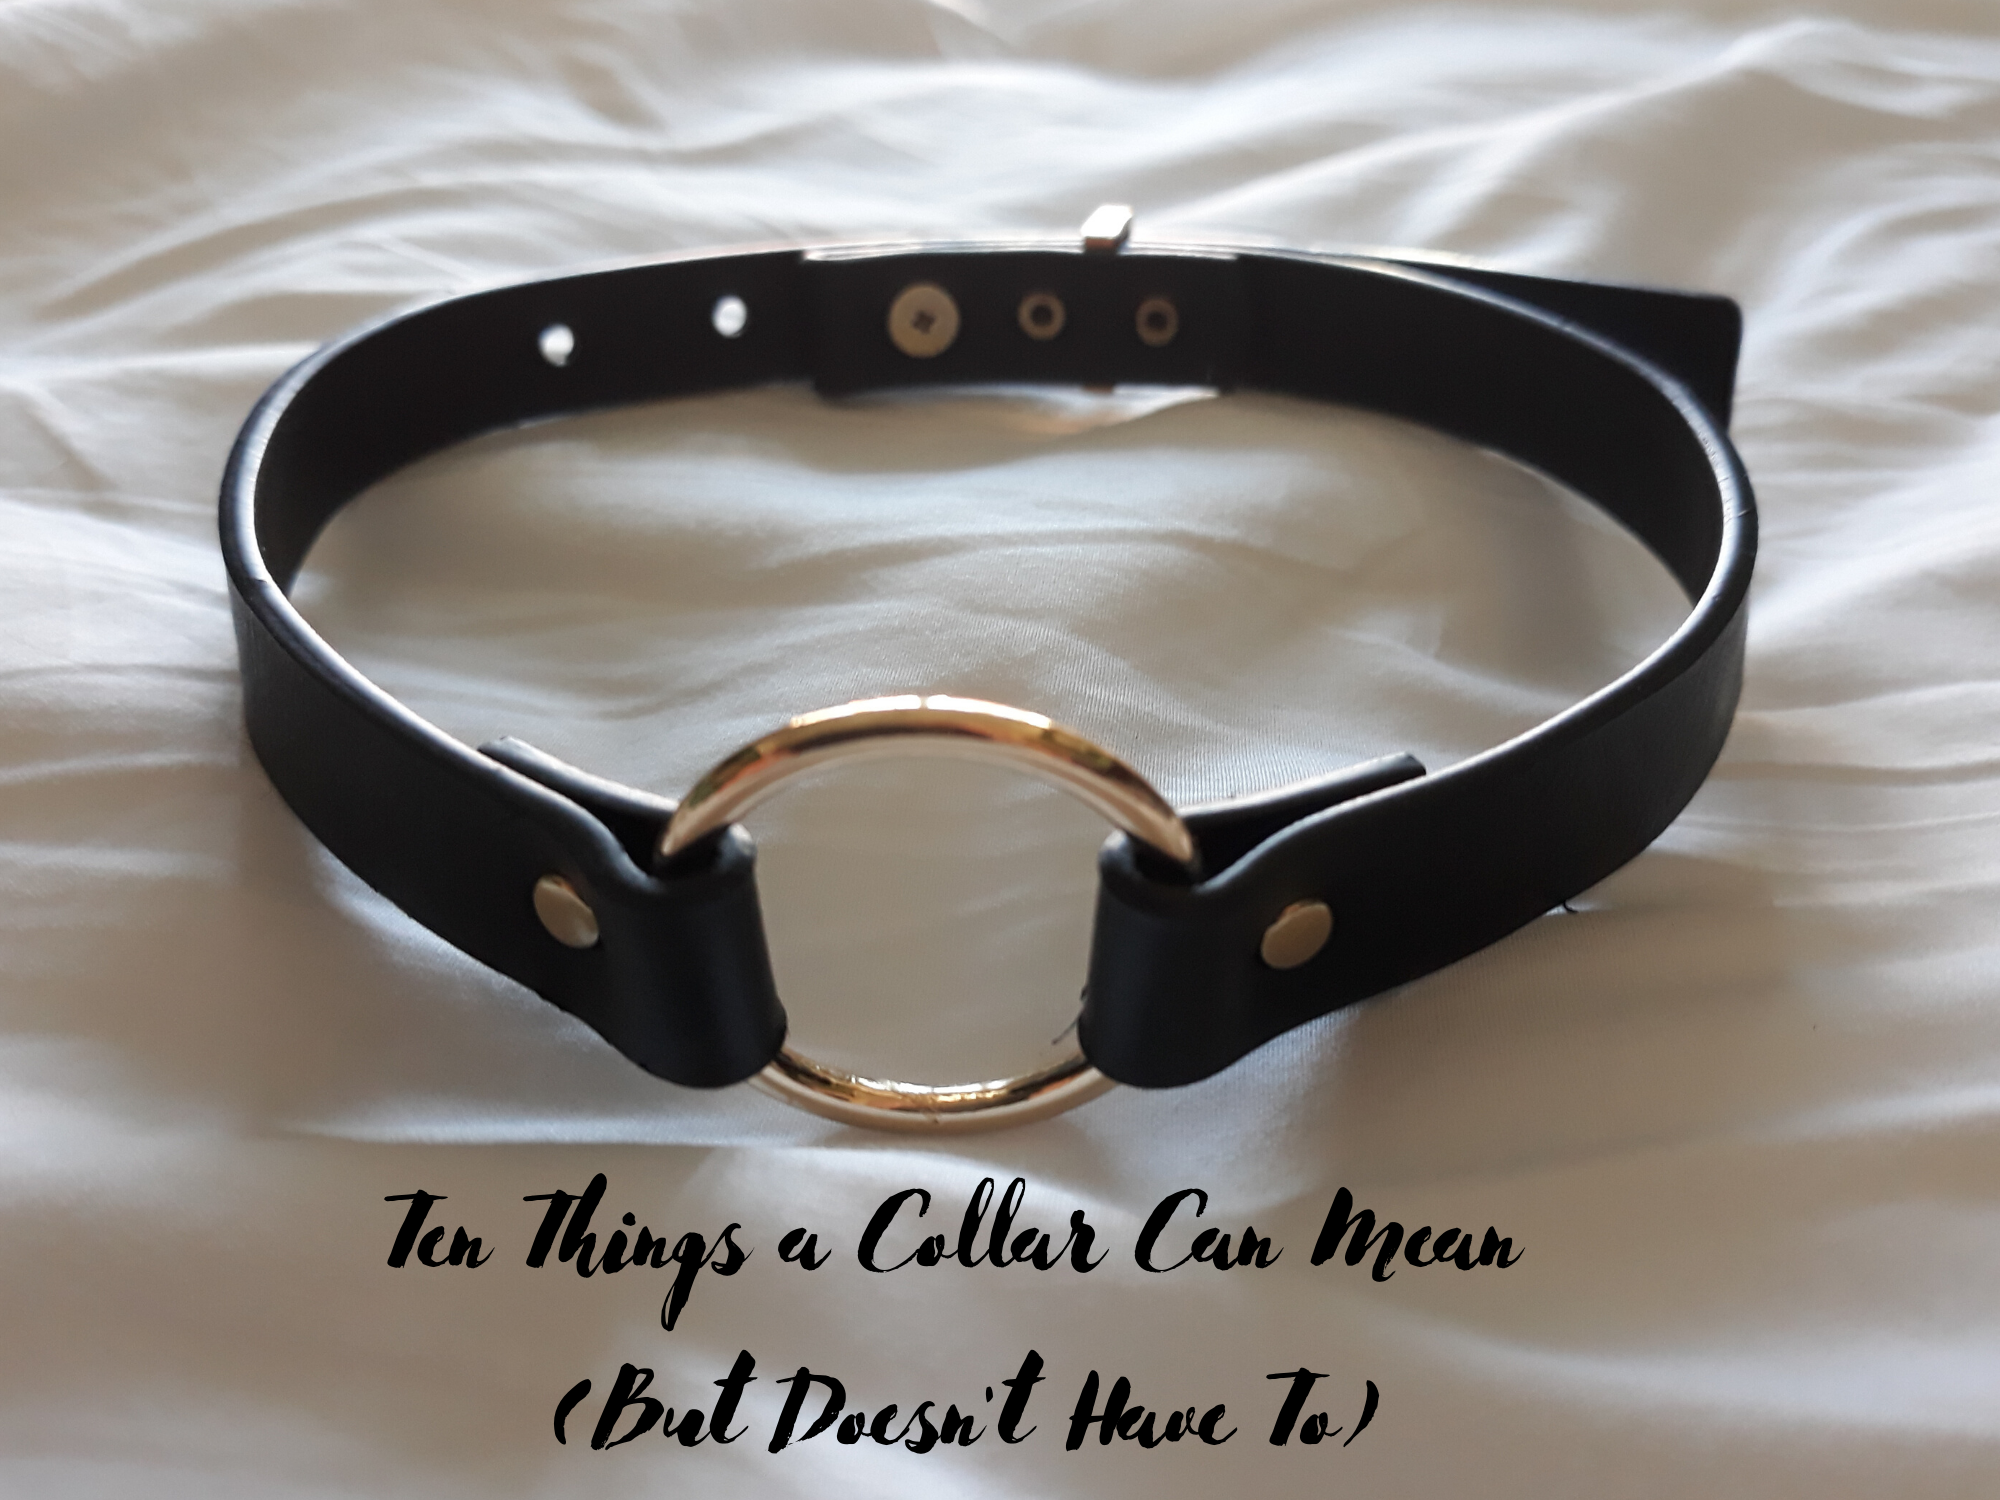 Ten Things a Collar Can Mean (But Doesn't Have To)